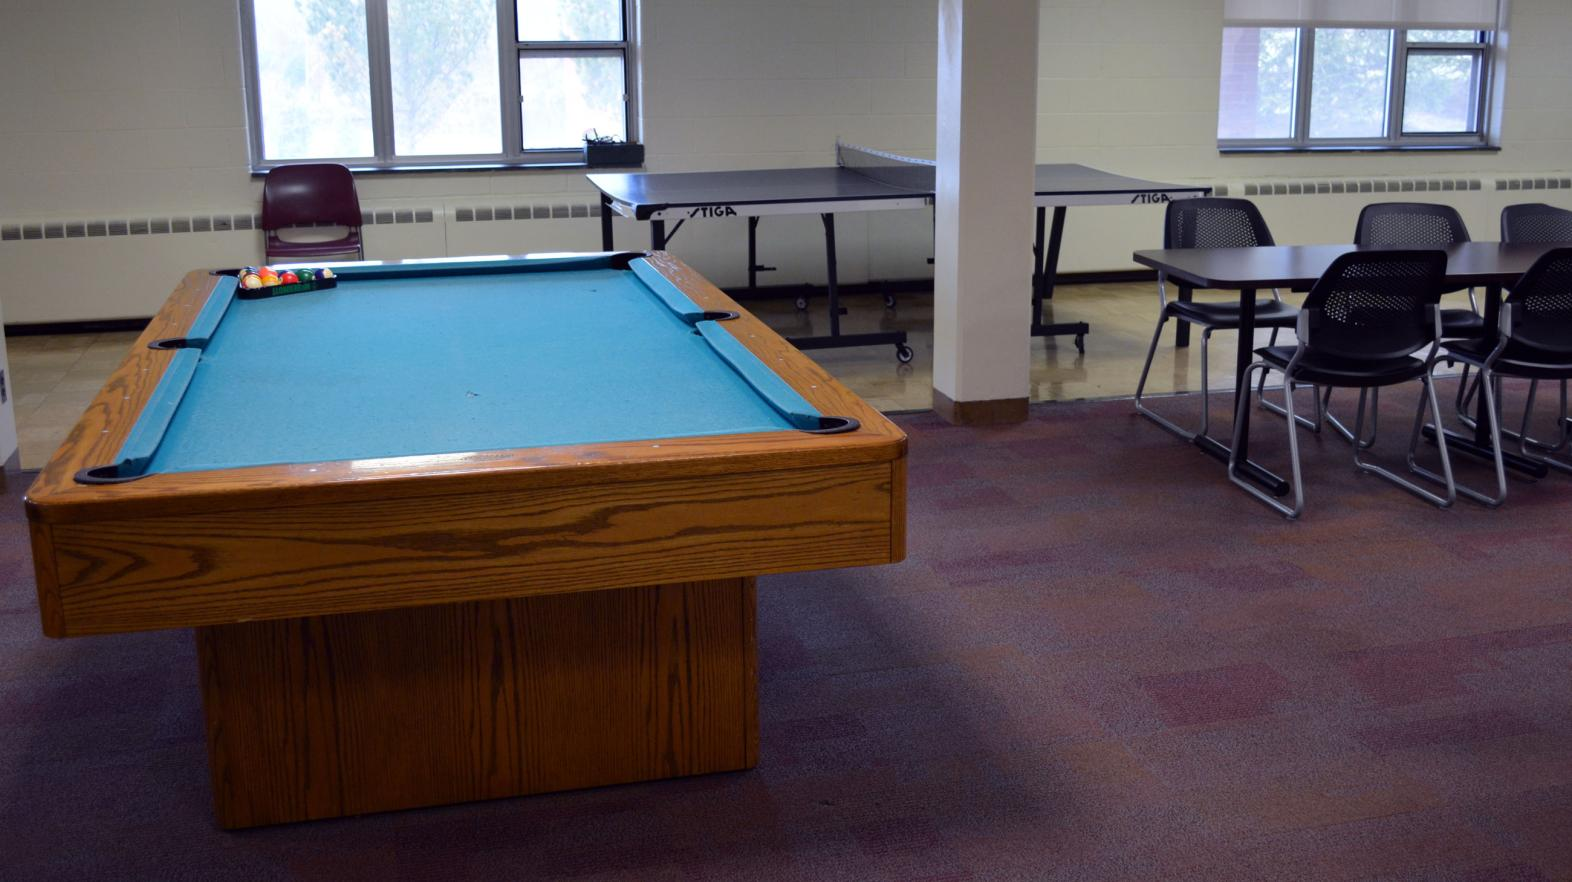 A pool table is included in the basement lounge of Massasoit hall.